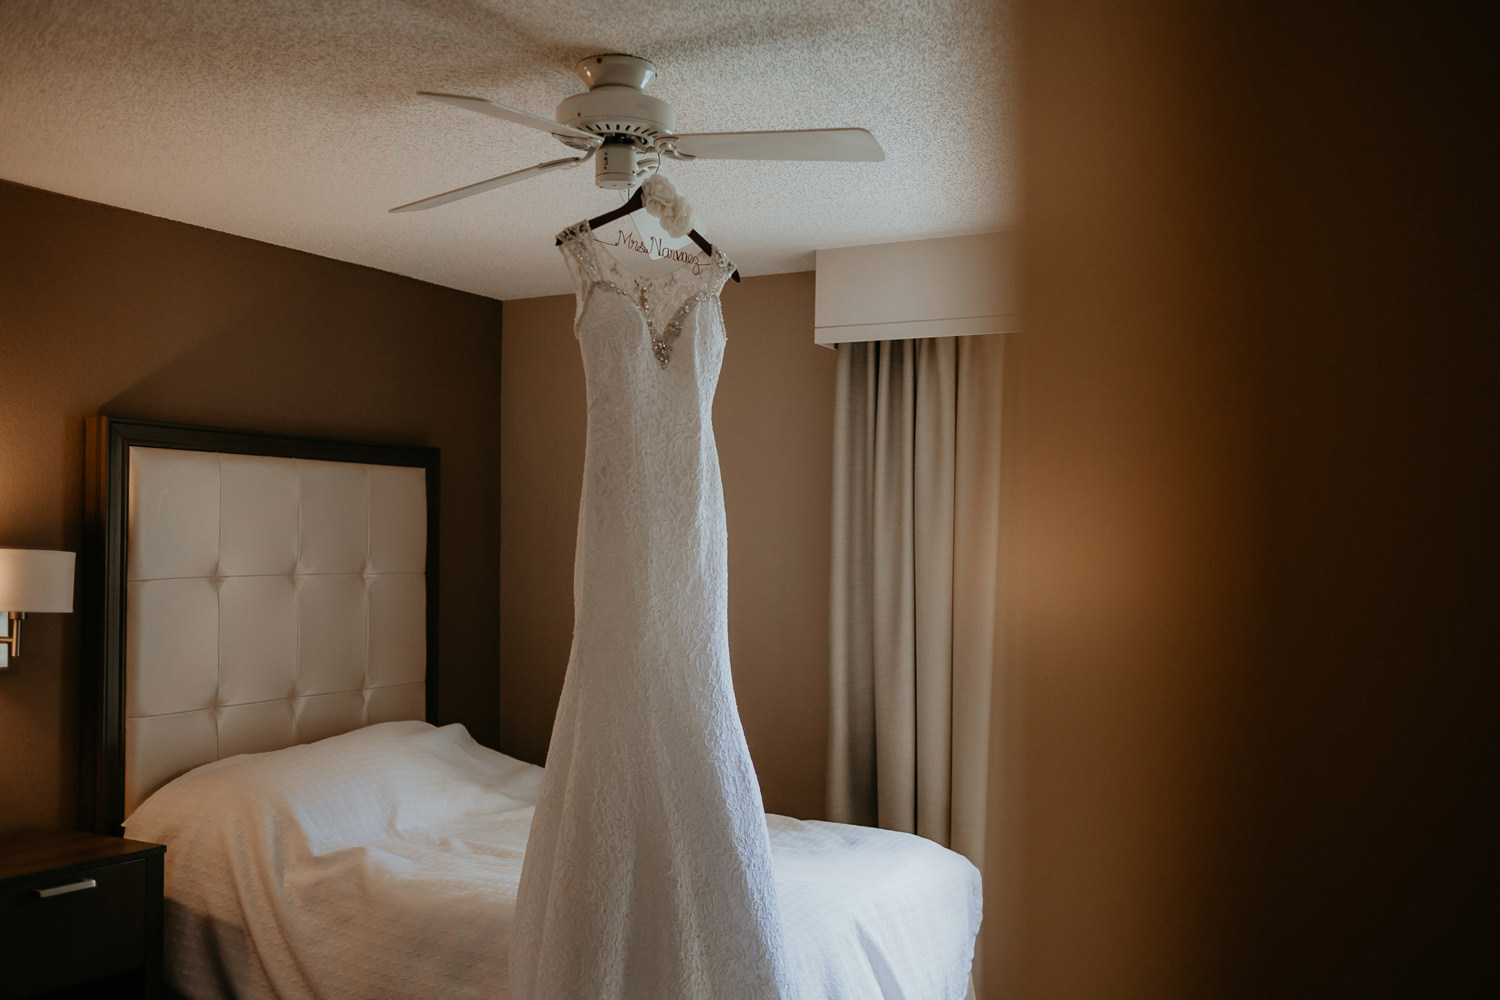 wedding dress hanging on fan inside hotel room